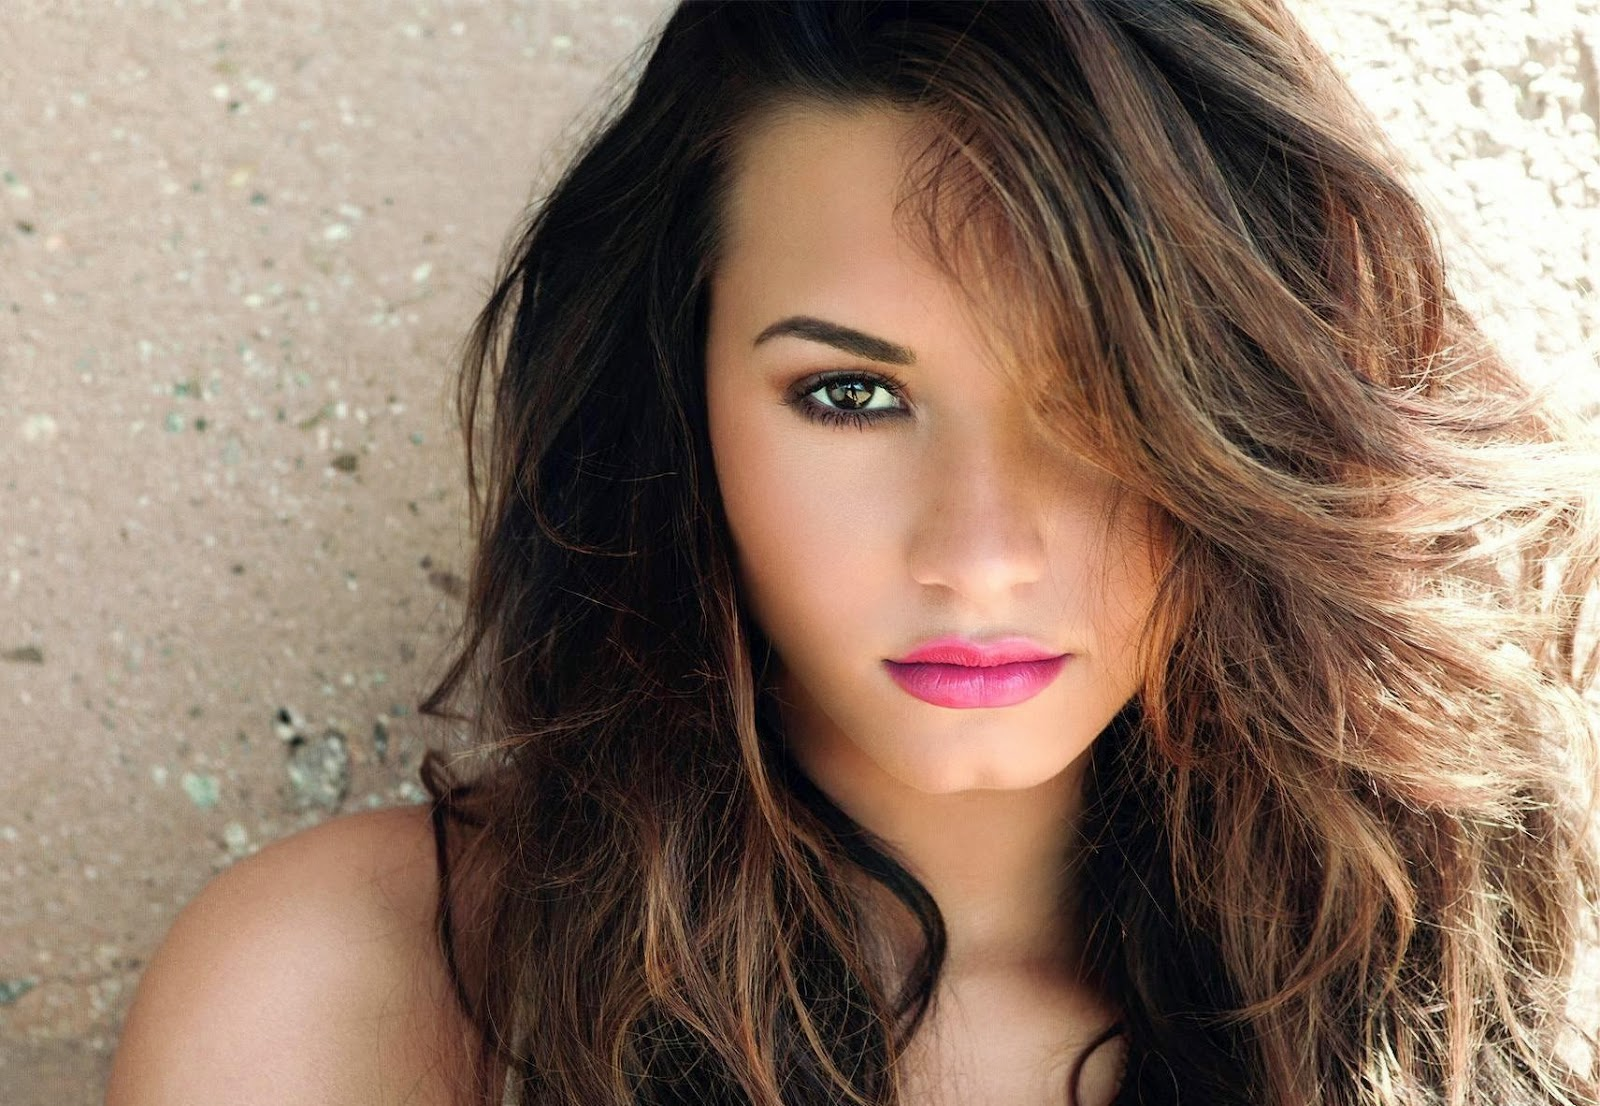 Demi Lovato Wallpapers Free Download